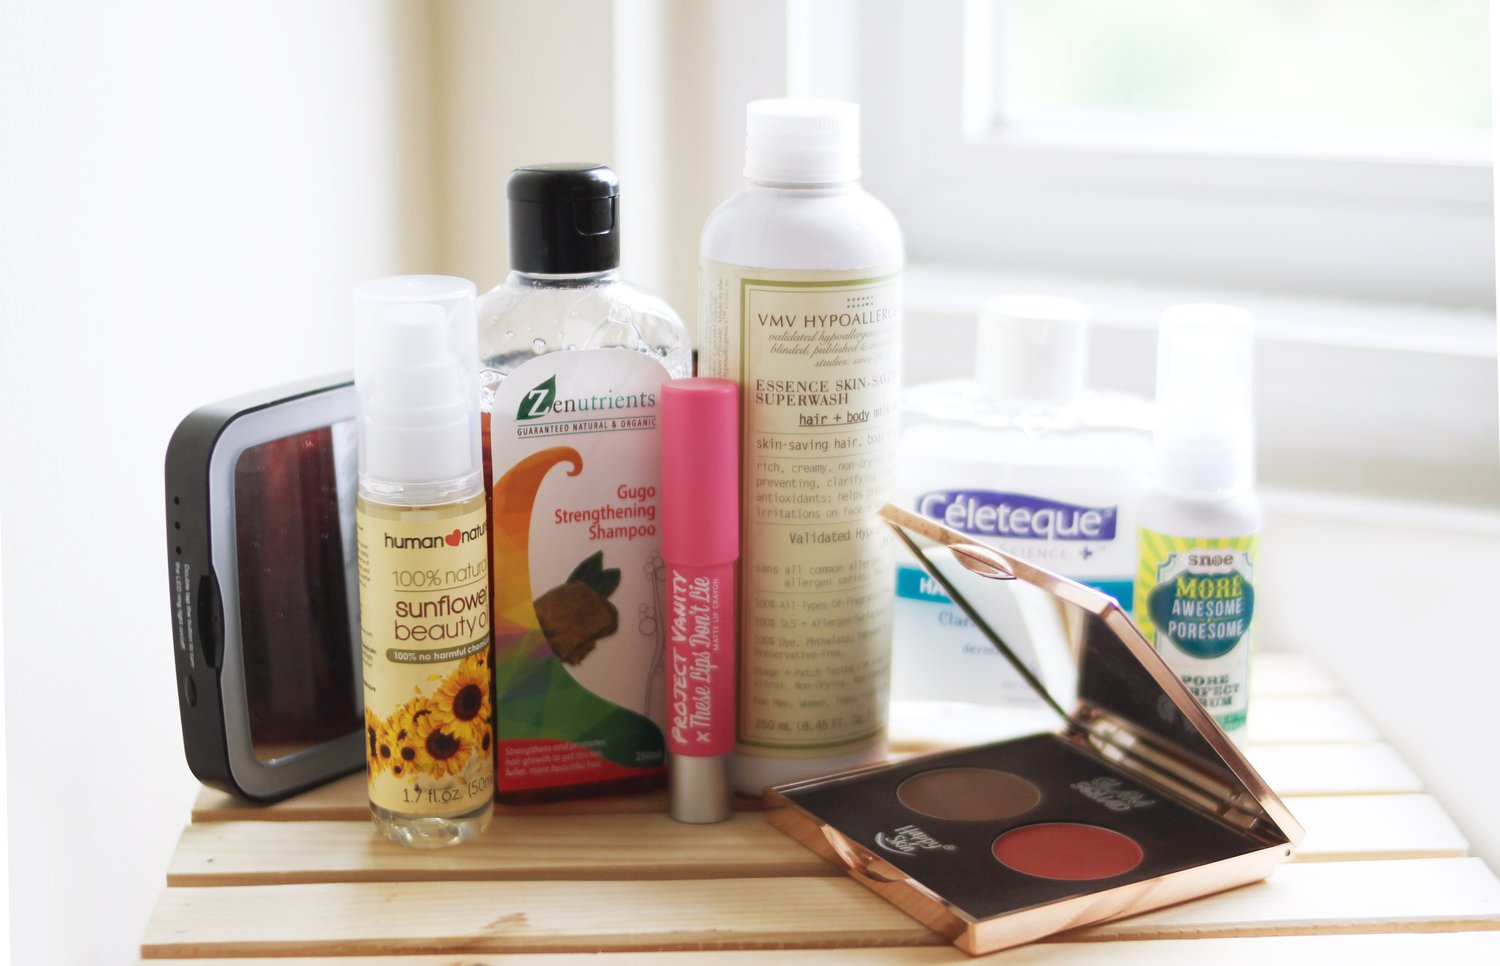 What's good: 10 local beauty products to rave about to a balikbayan